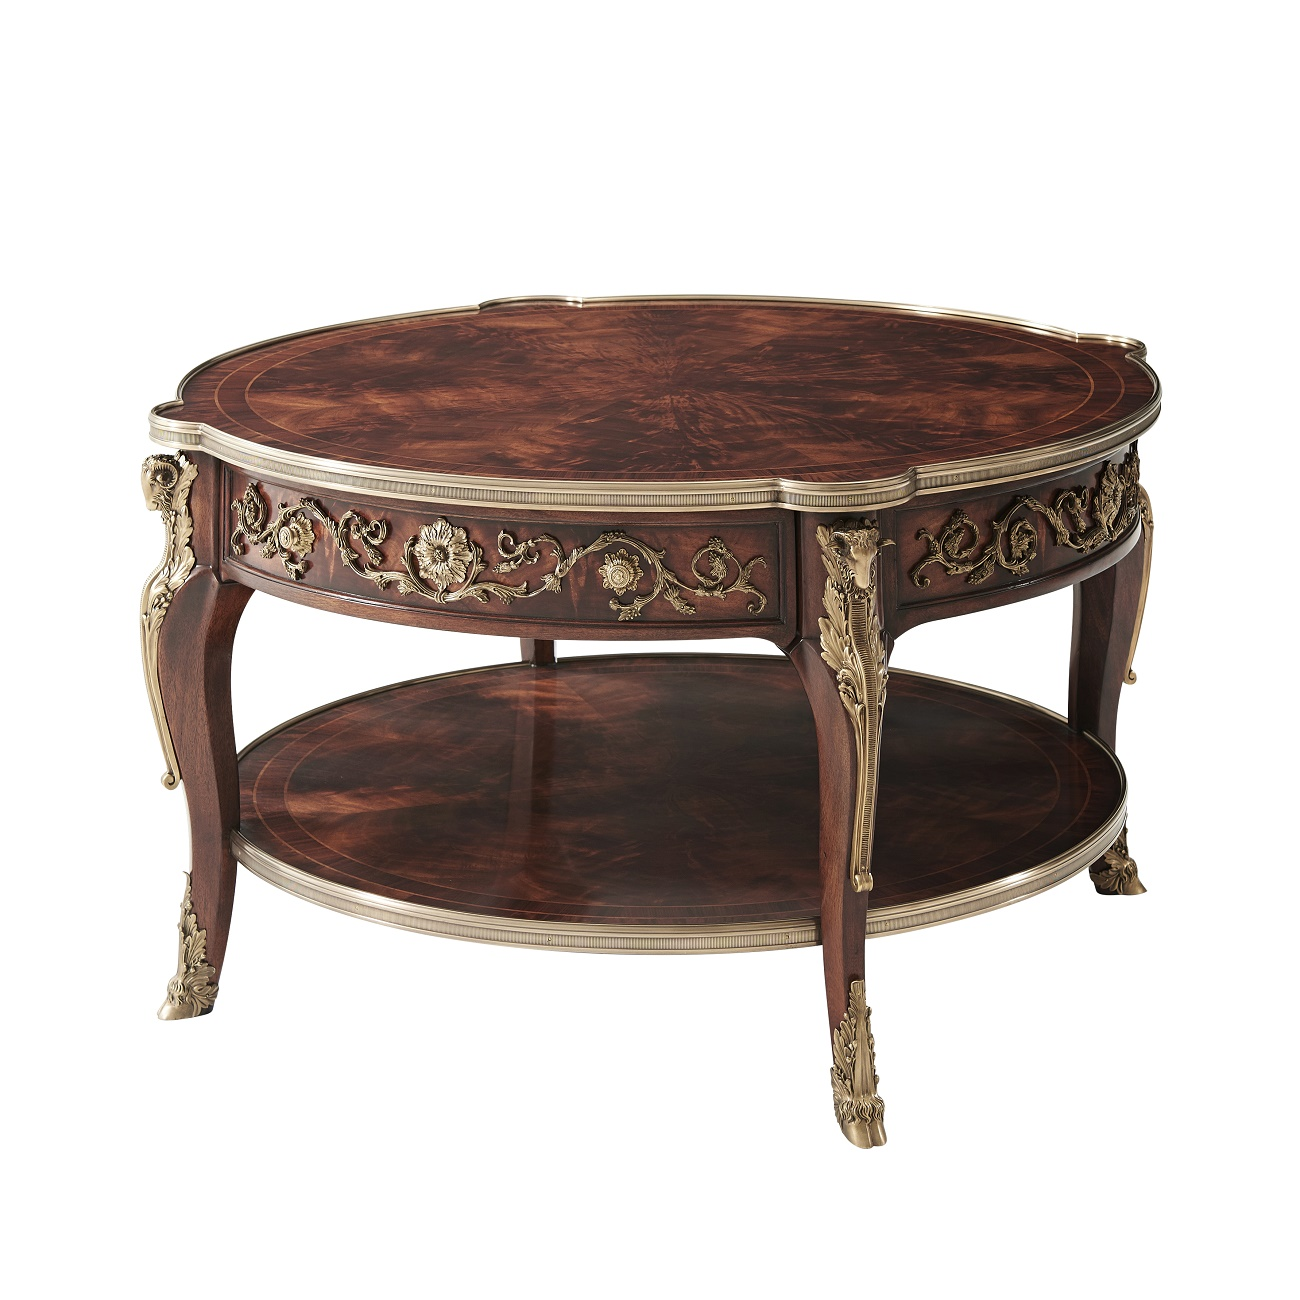 5105 178 A Capital Cocktail Table theodore alexander